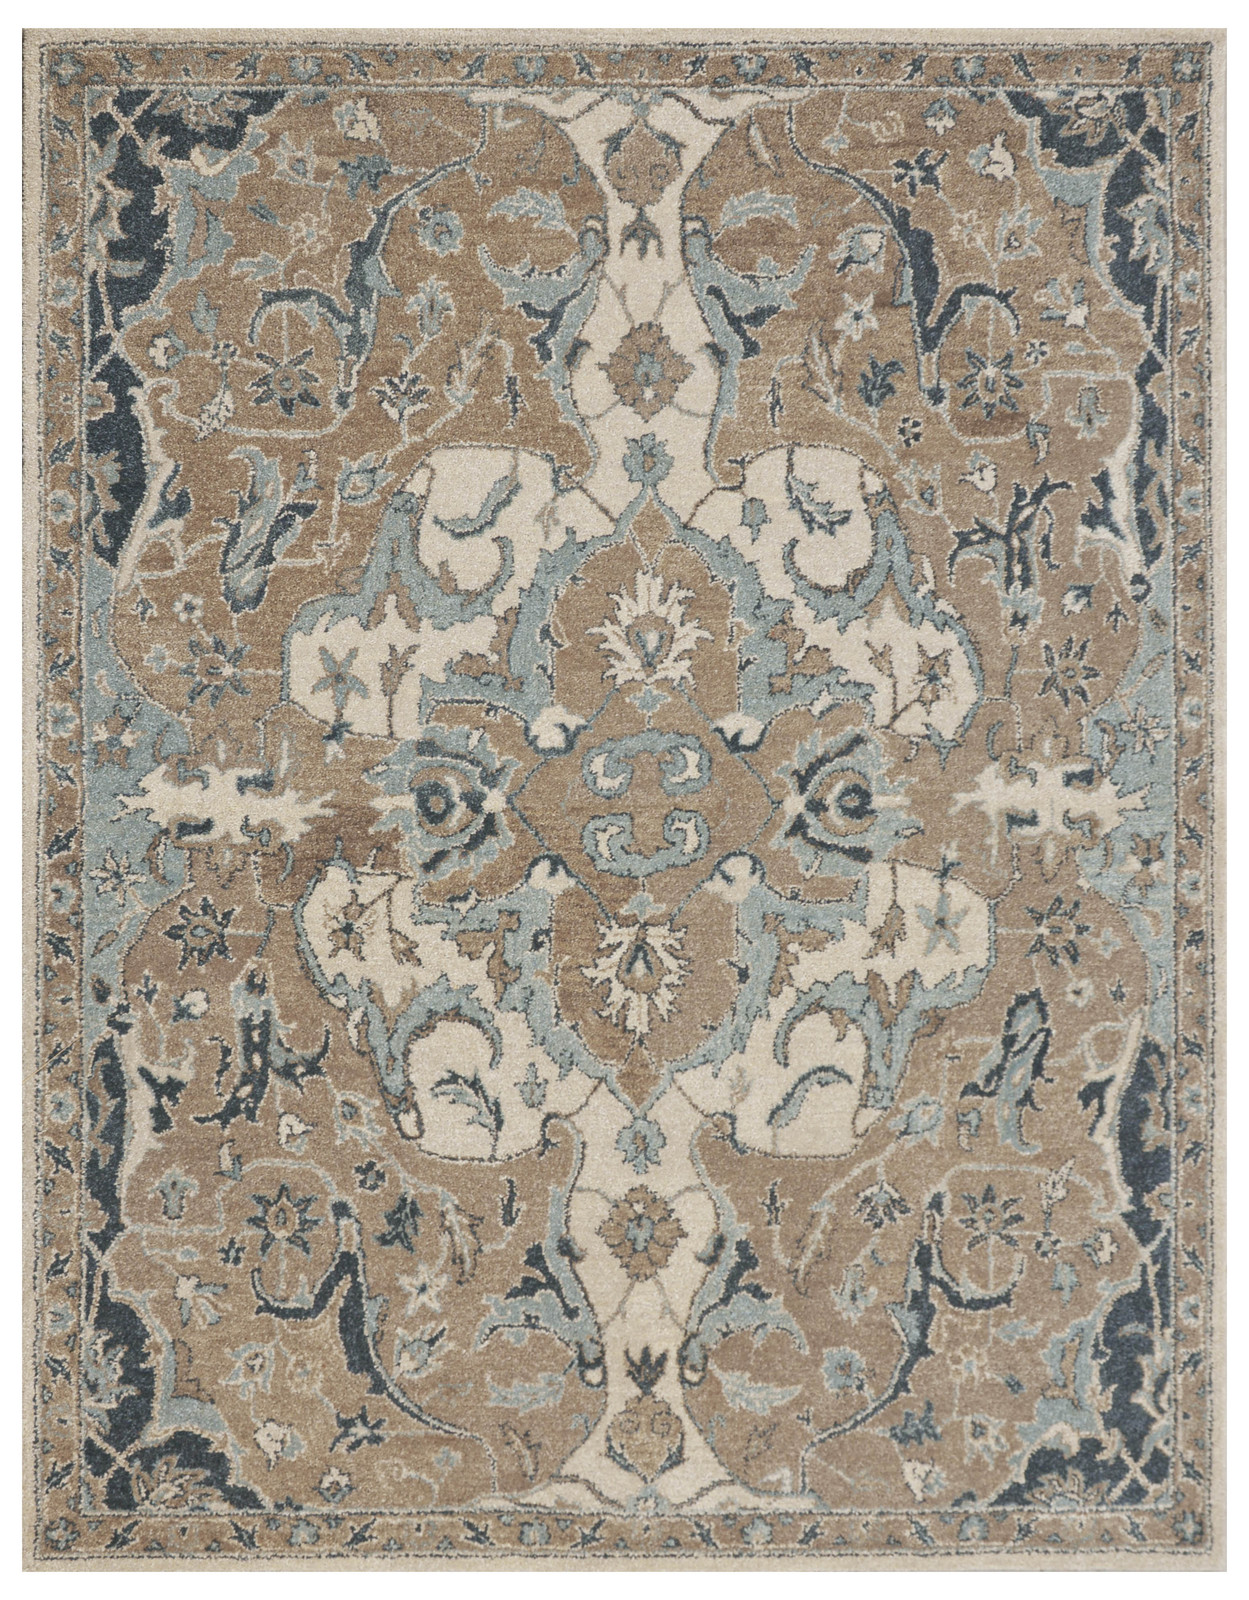 Brand New Hand Tufted Gray Blue Brown Traditional Persian